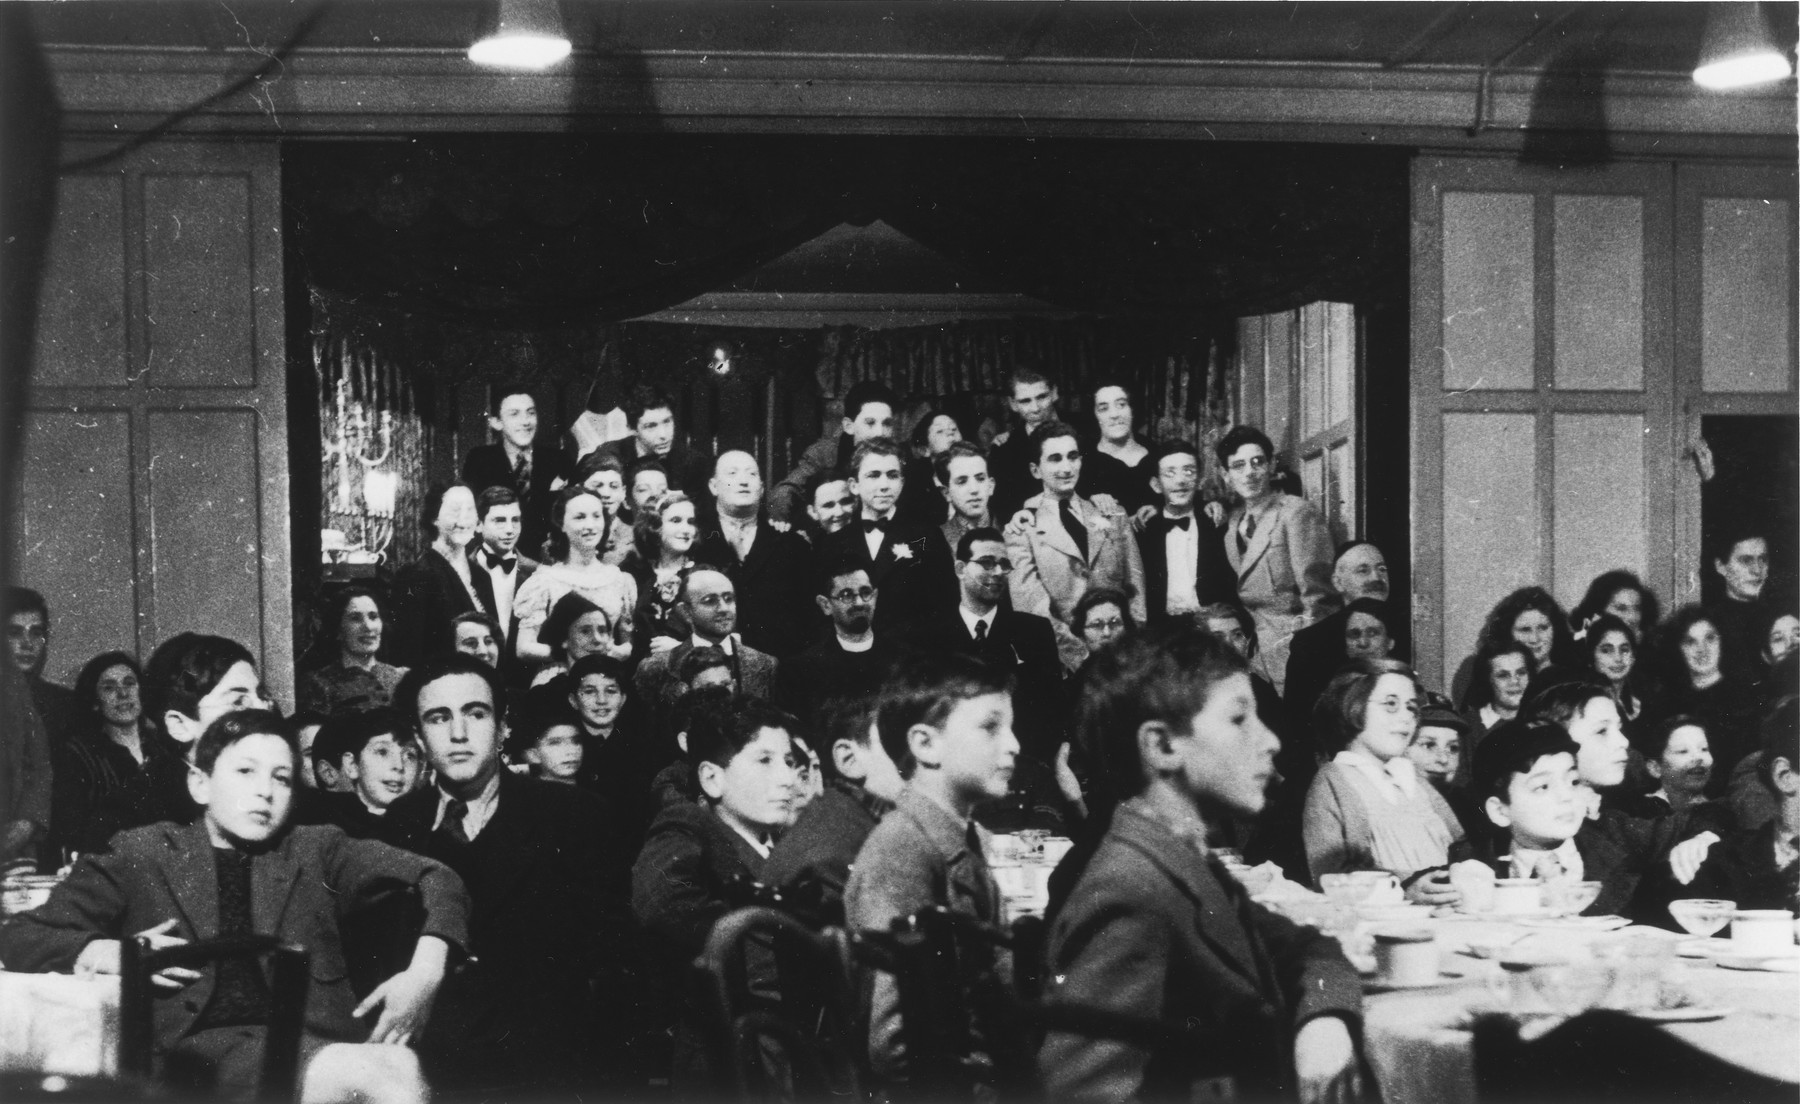 Jewish children from the Rowden Hall School attend a Hannukah party in an overflow hostel on Harold Road.  Among those pictured are Guenther Cahn, his brother Helmuth Cahn (later Harry Curtis, standing second row, fourth from right), Eric Hamburger (standing second row with a flower in his lapel), Kurt Berger ( standing, first row with glasses, a teacher recruited from the internees in the Kitchener Camp), Mr. and Mrs. Katz and Mrs. Bergel.